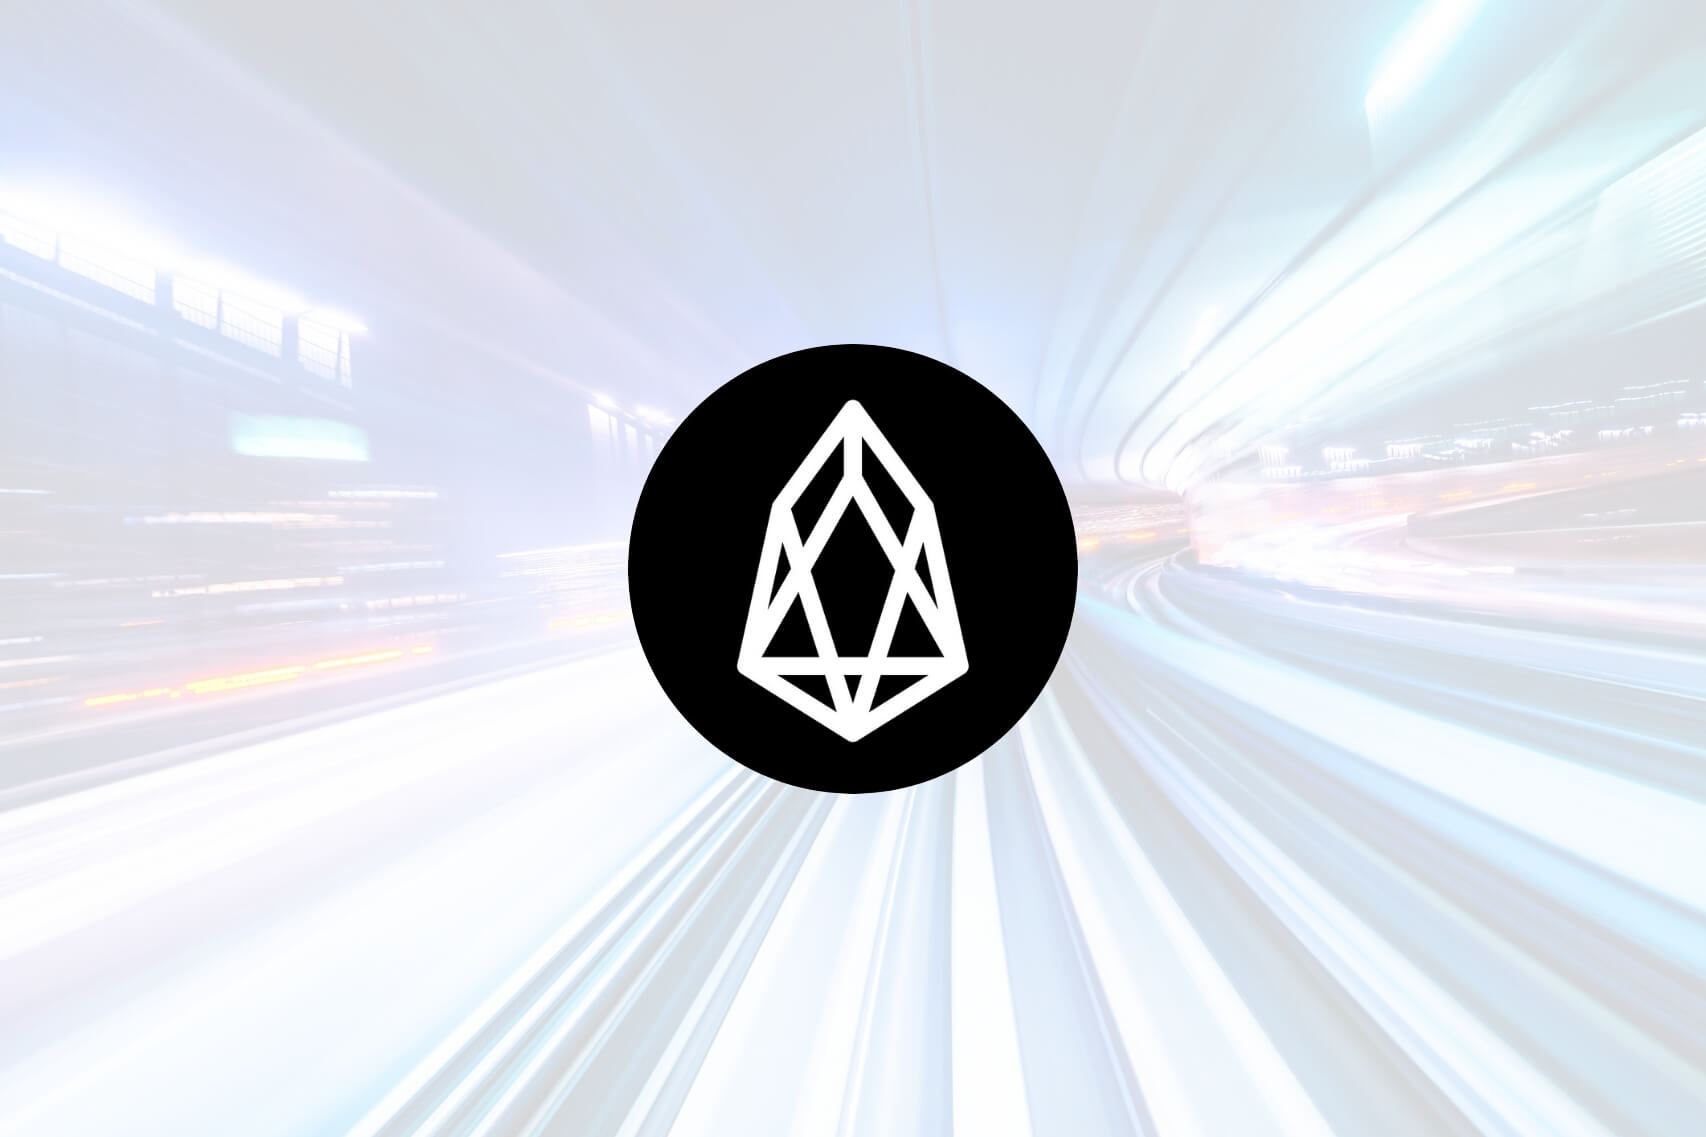 EOS Price Analysis: Will the Bulls Push EOS/USD Towards $2.56 to Continue Higher?